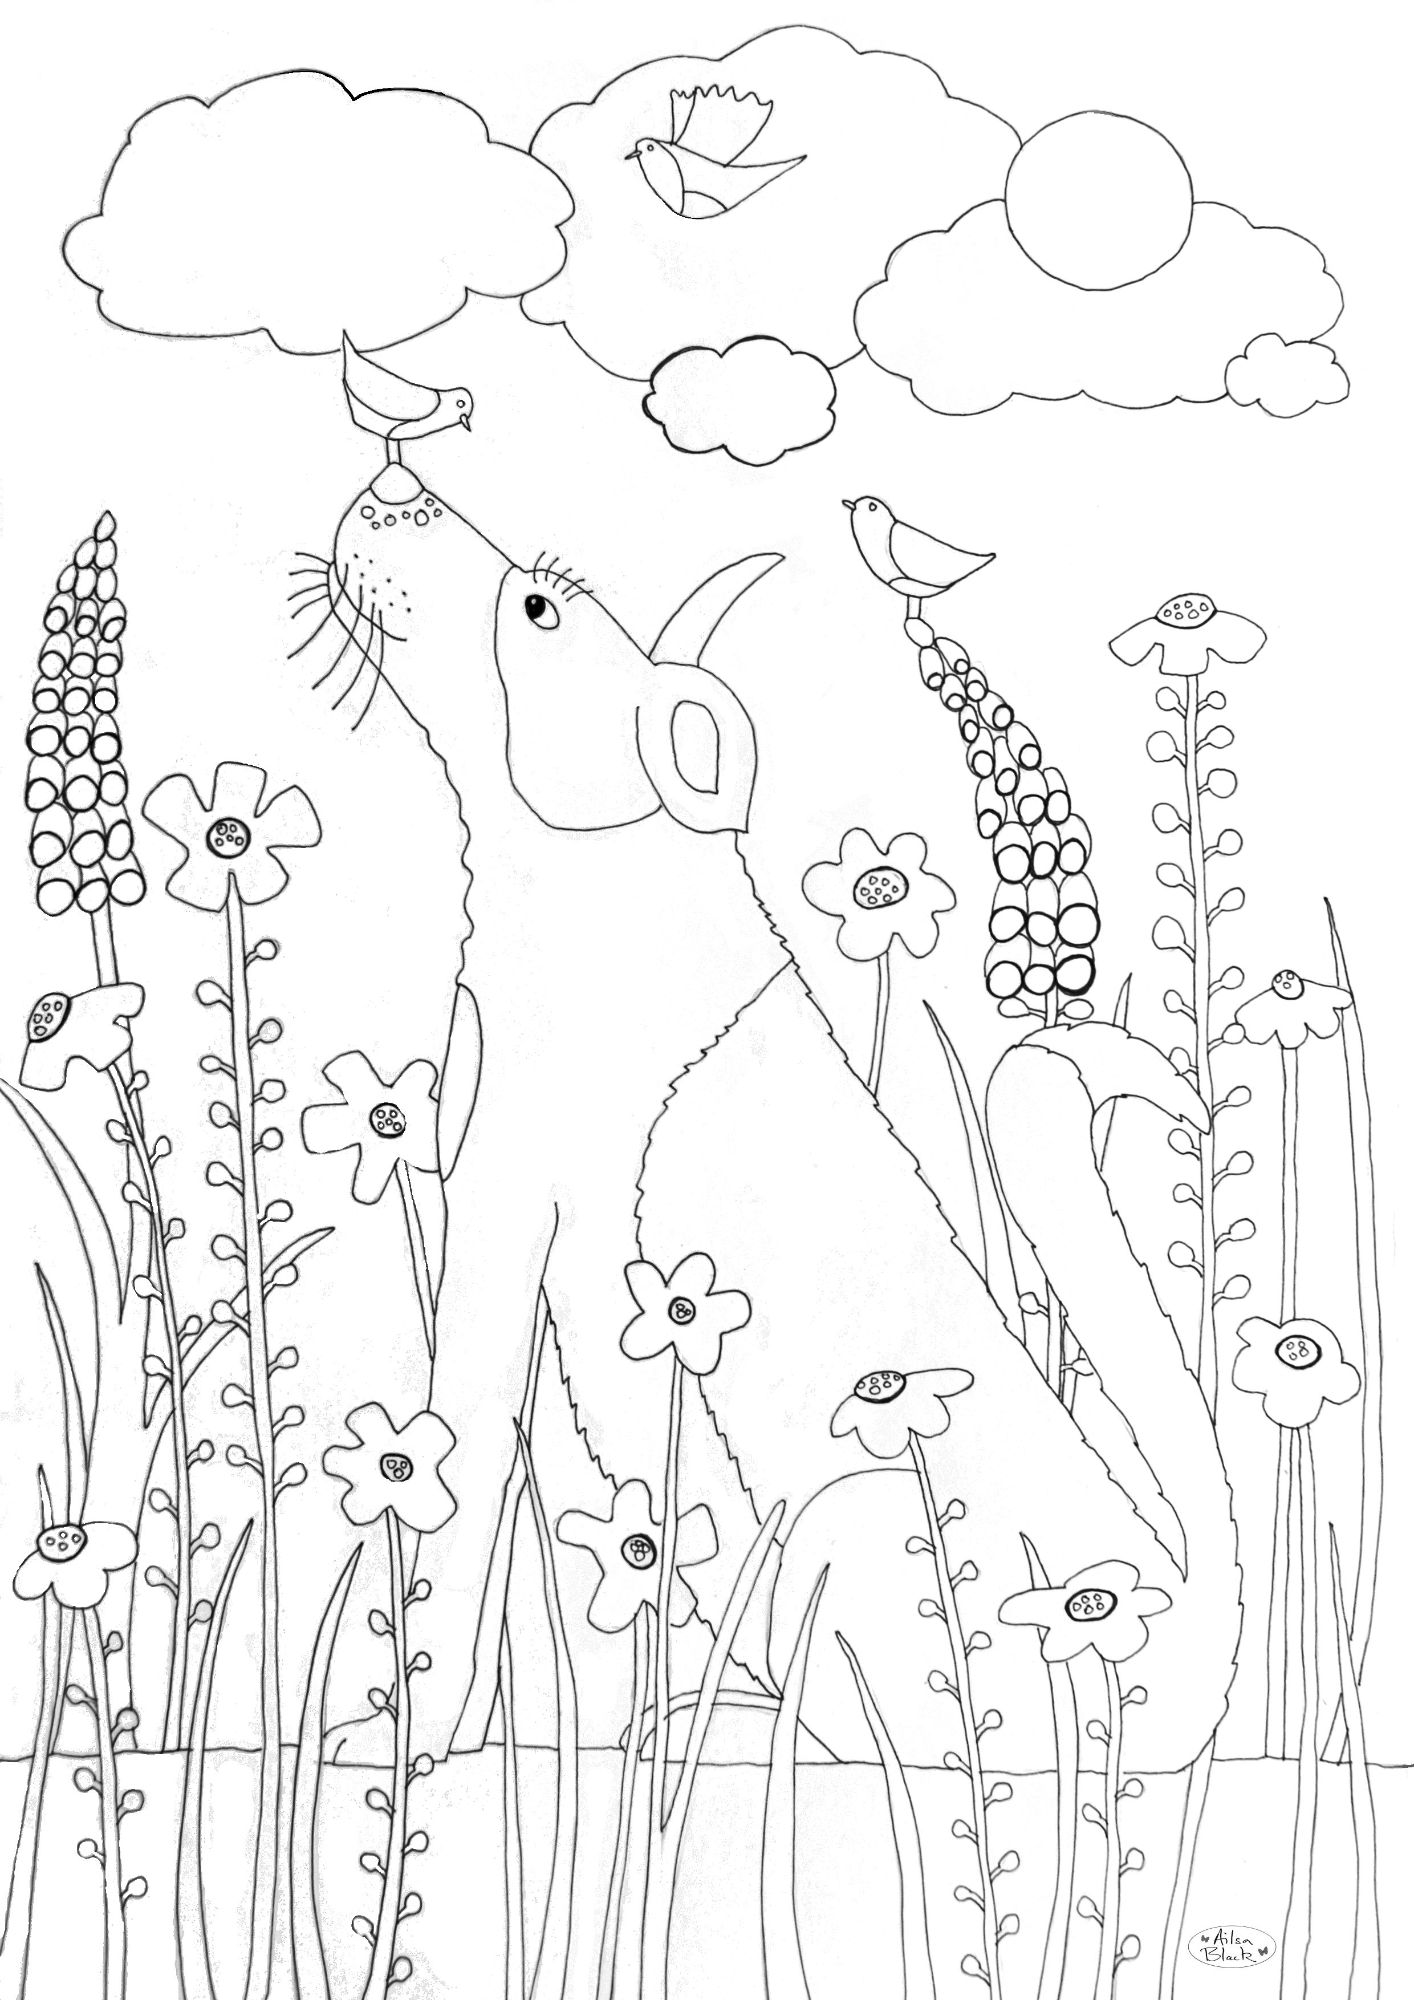 Free collie dog  for colouring in